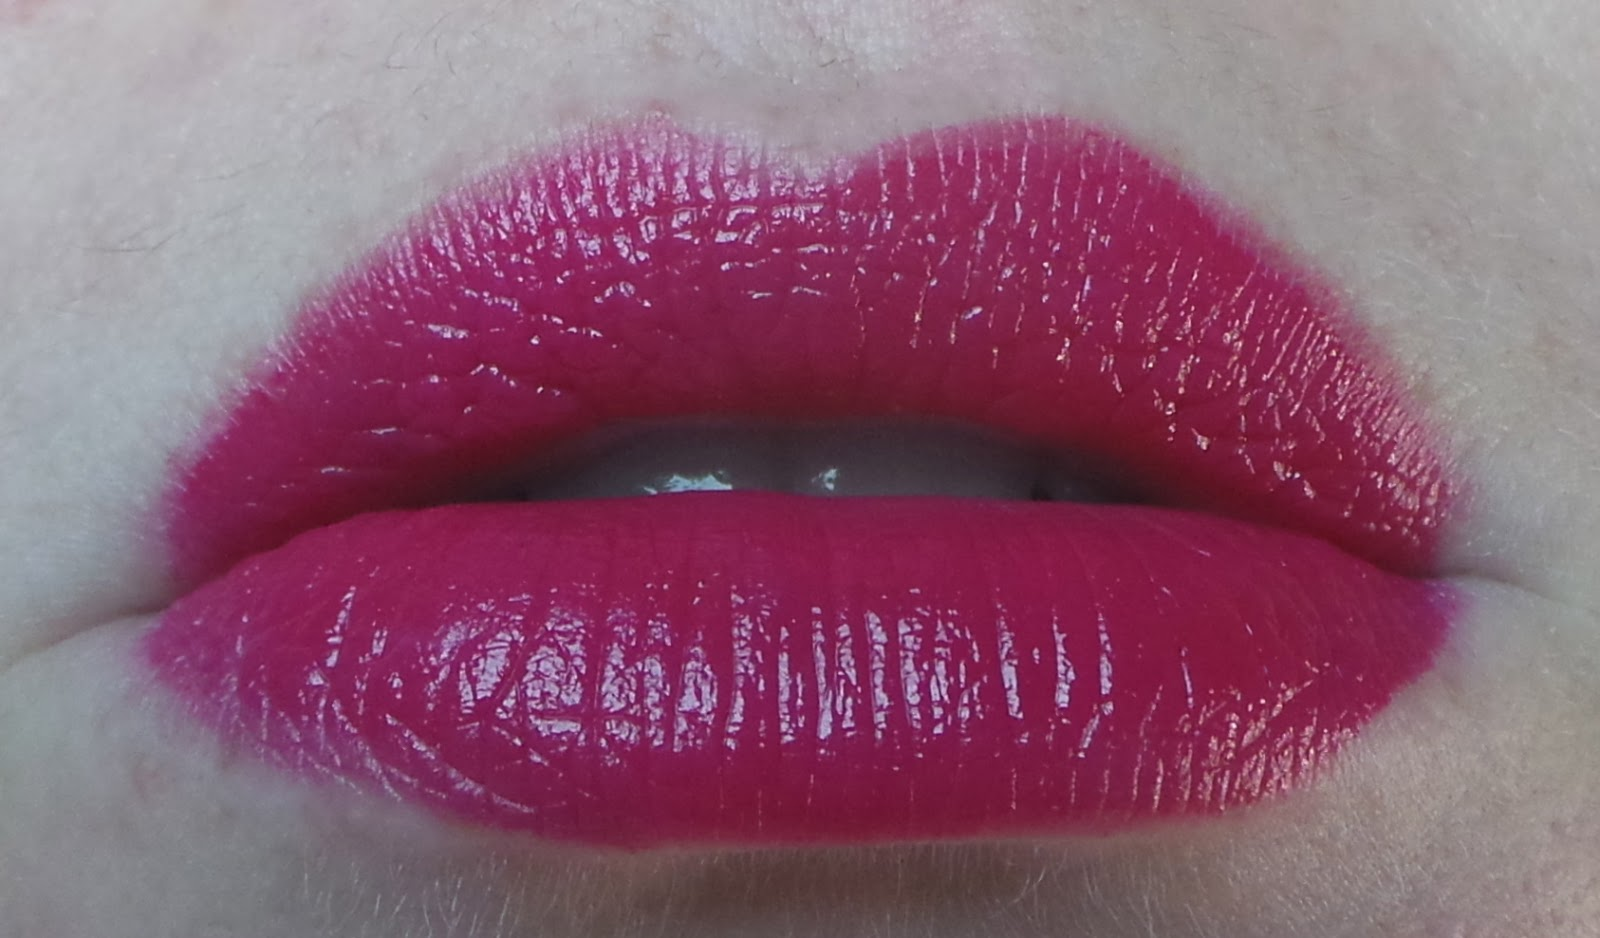 Estee Lauder Pure Colour Envy Tumultuous Pink